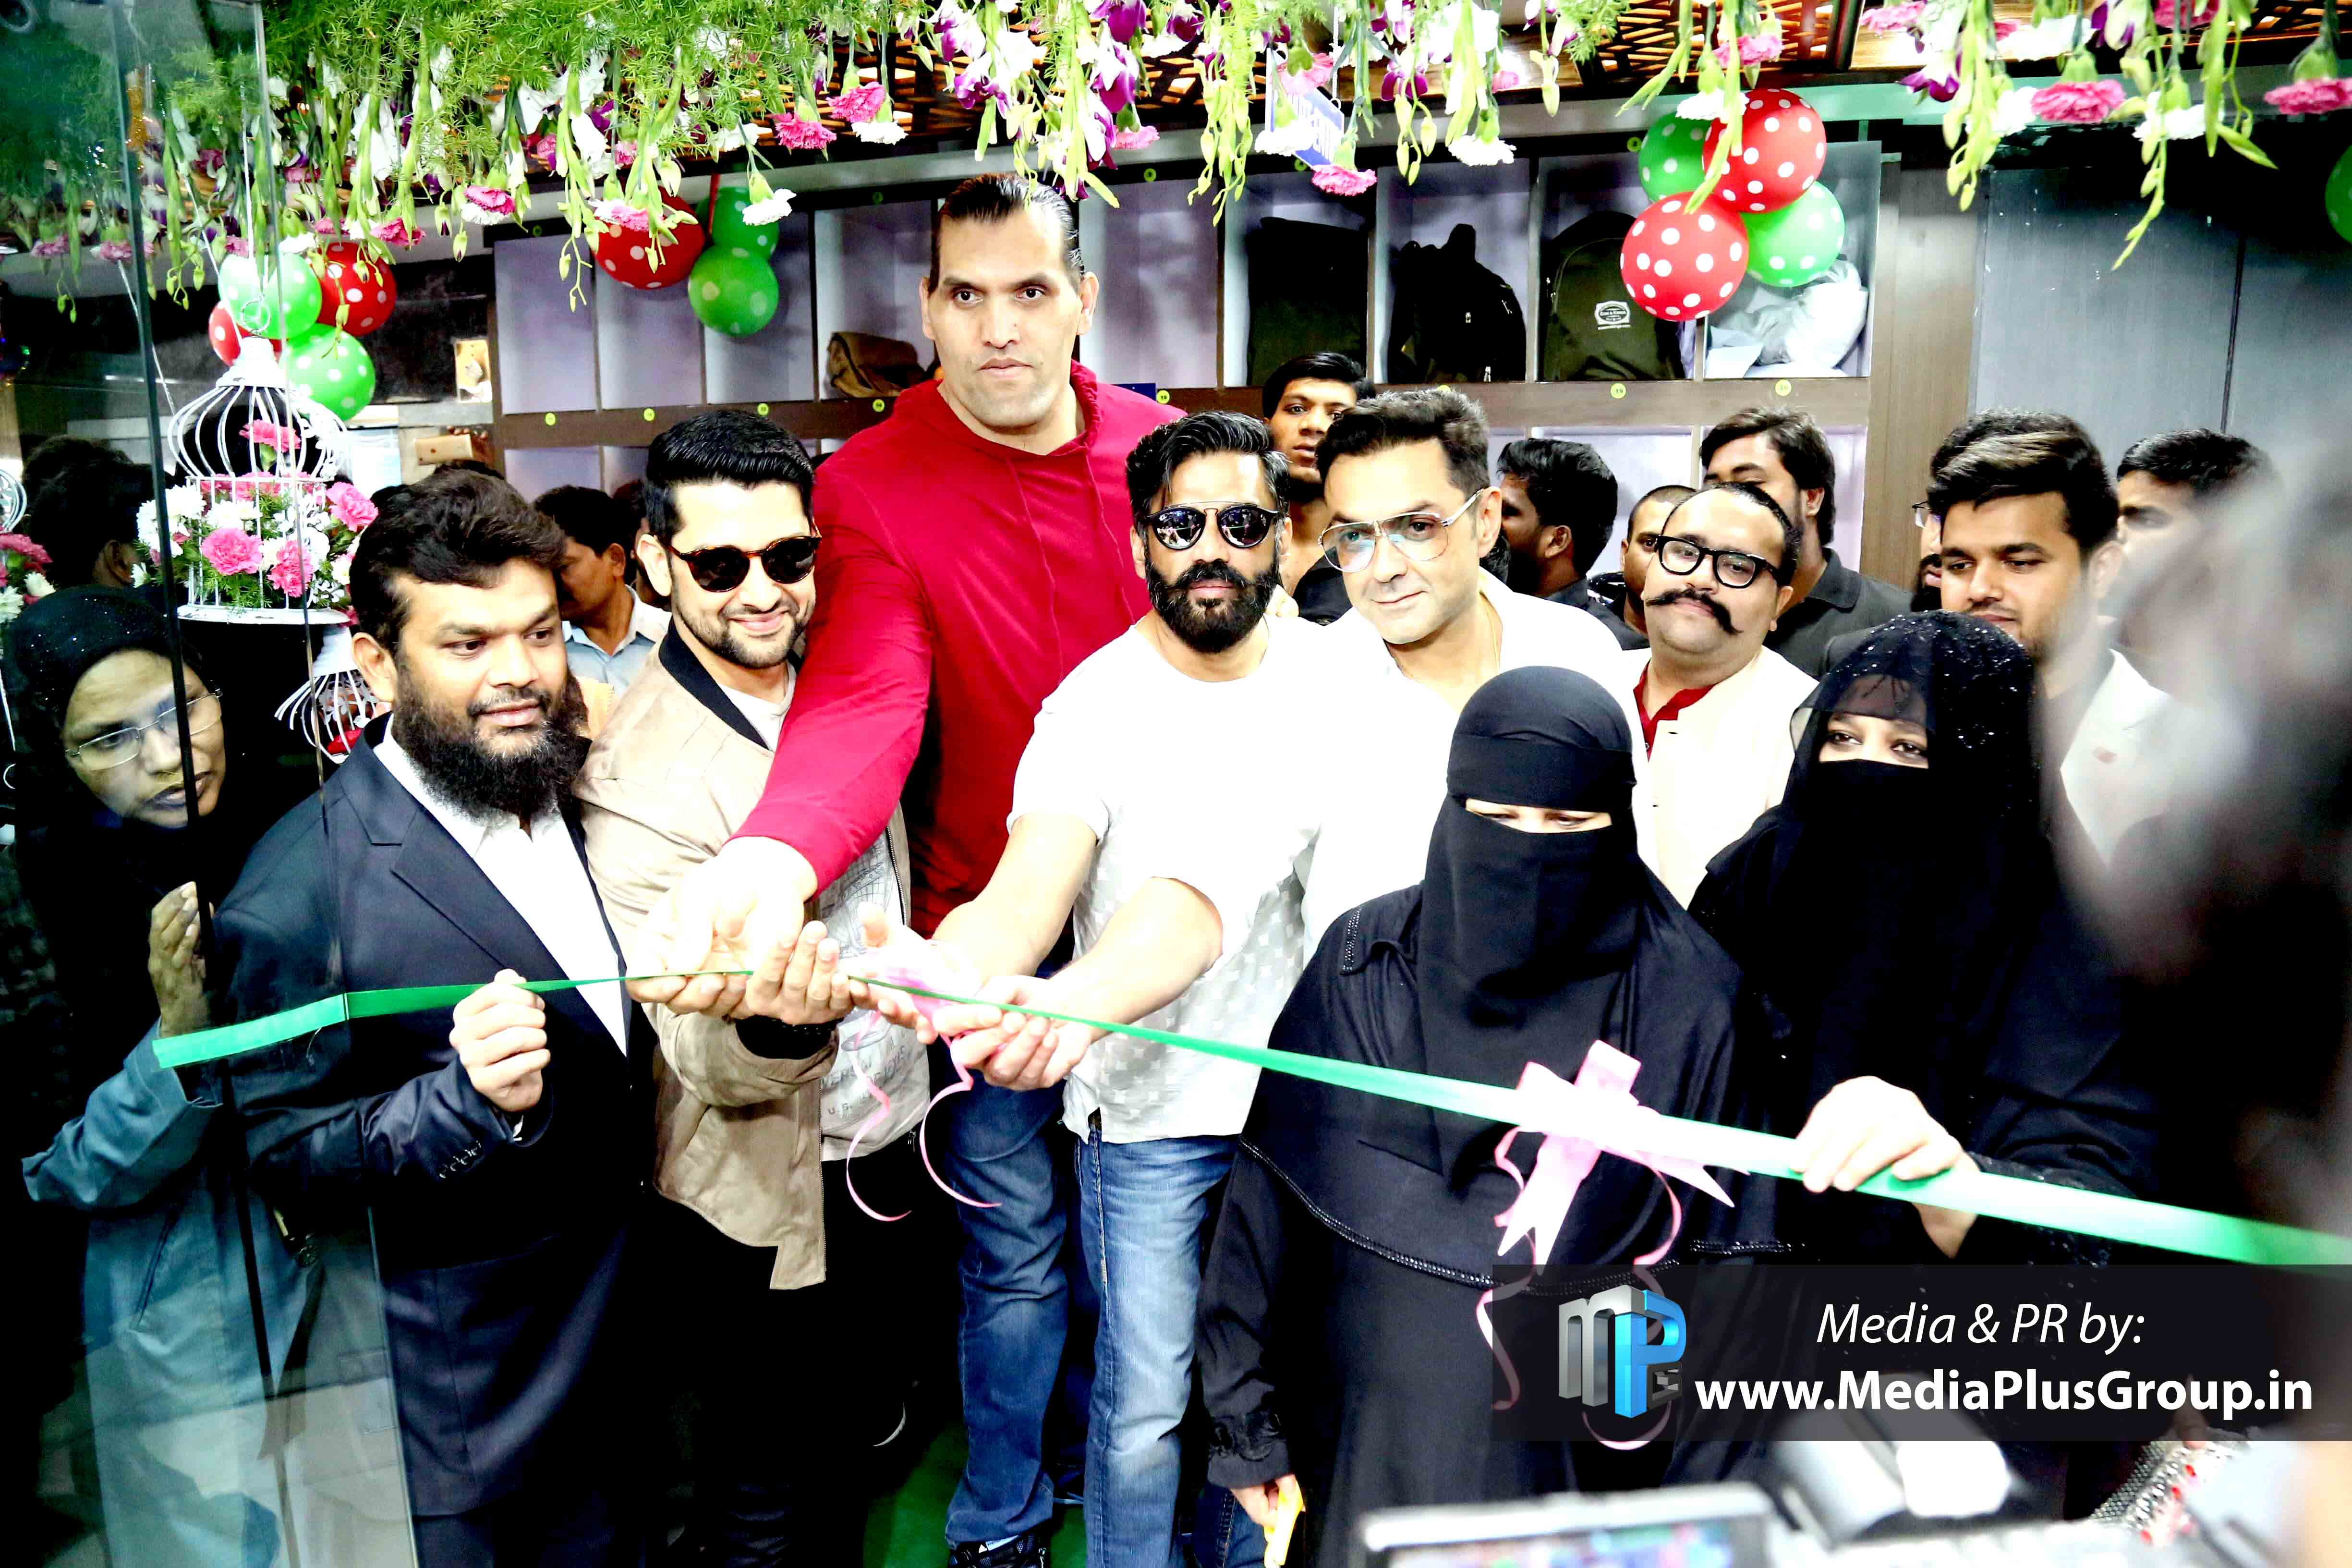 PR-Campaign-by-Media-Plus-for-Heera-Group-with-Bollywood-Stars-Hyderabad